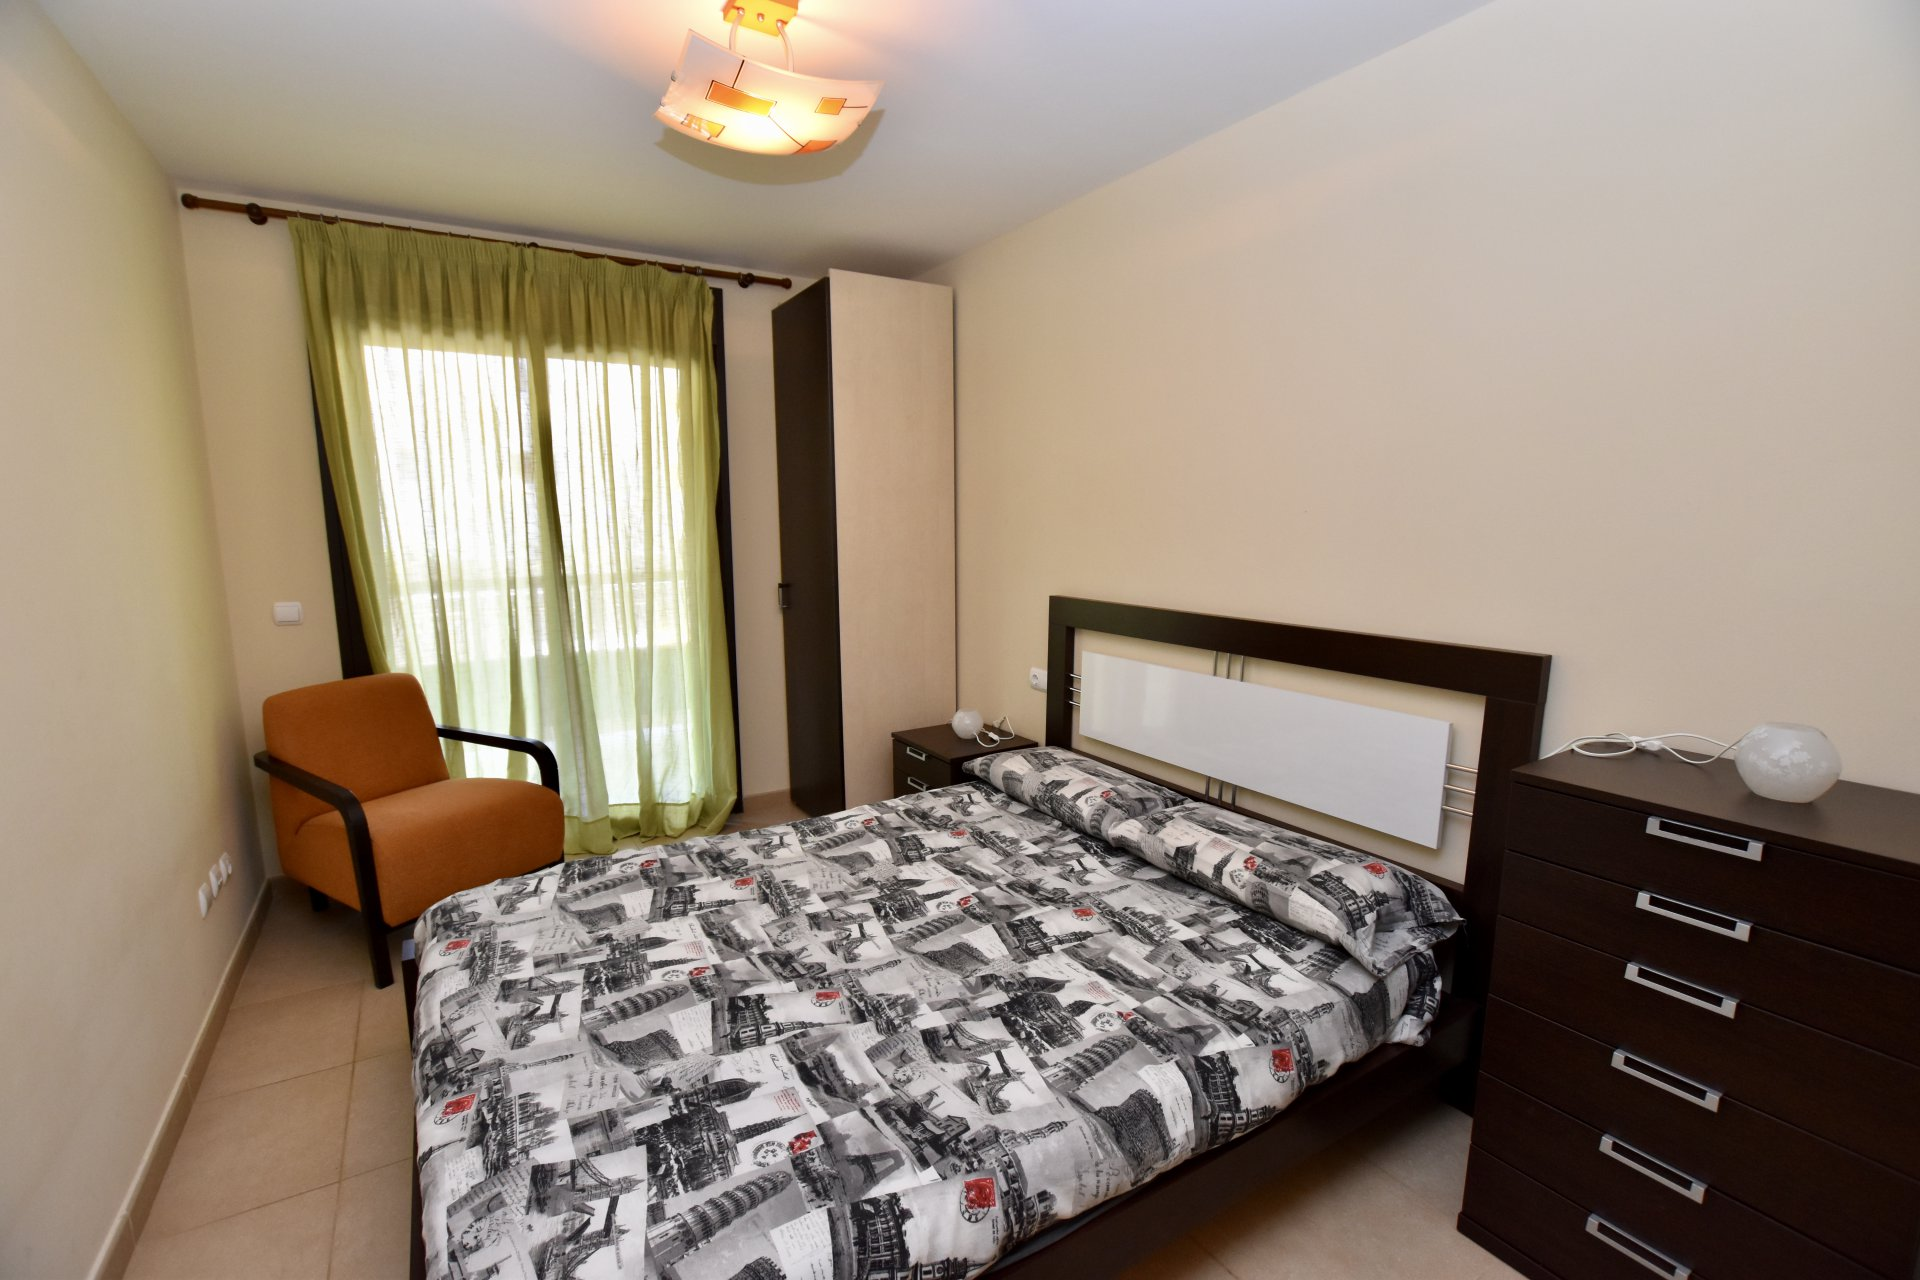 For sale in Palm-Mar in the residence El Mocan or rental purchase